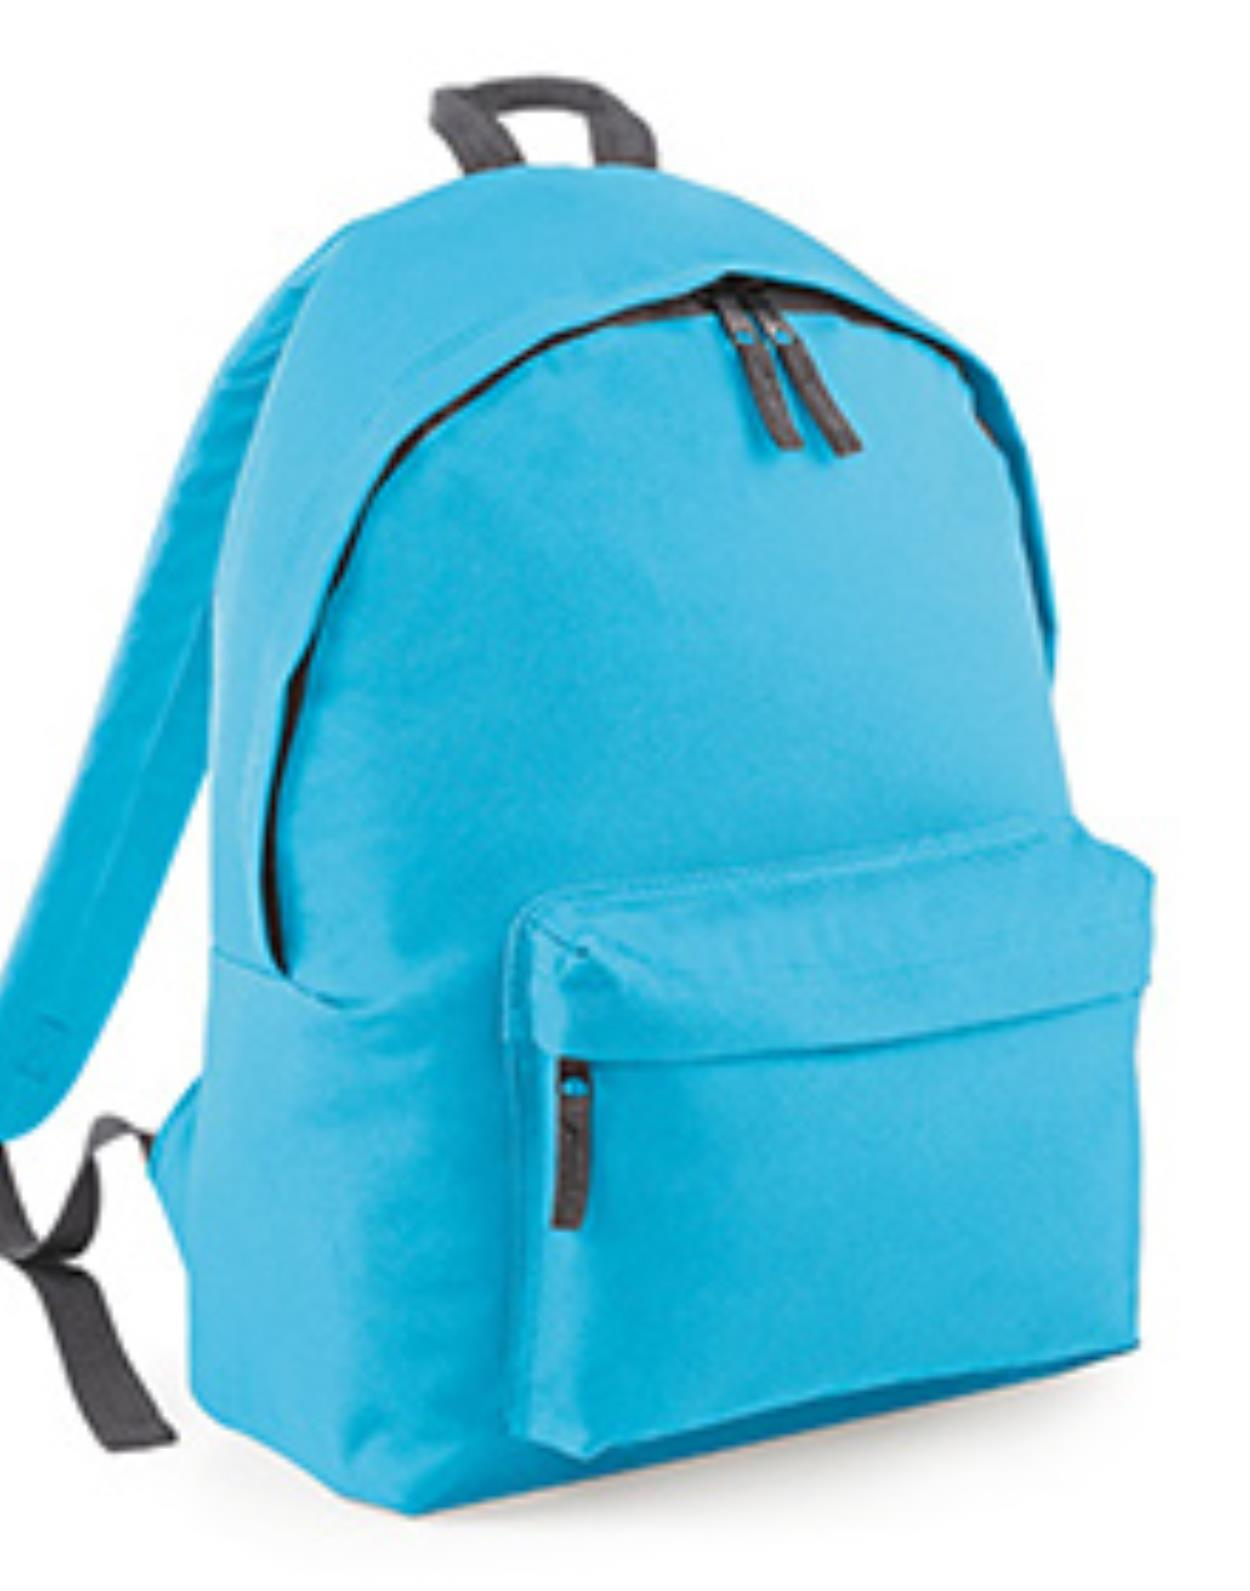 BG125B - Kids Back Pack